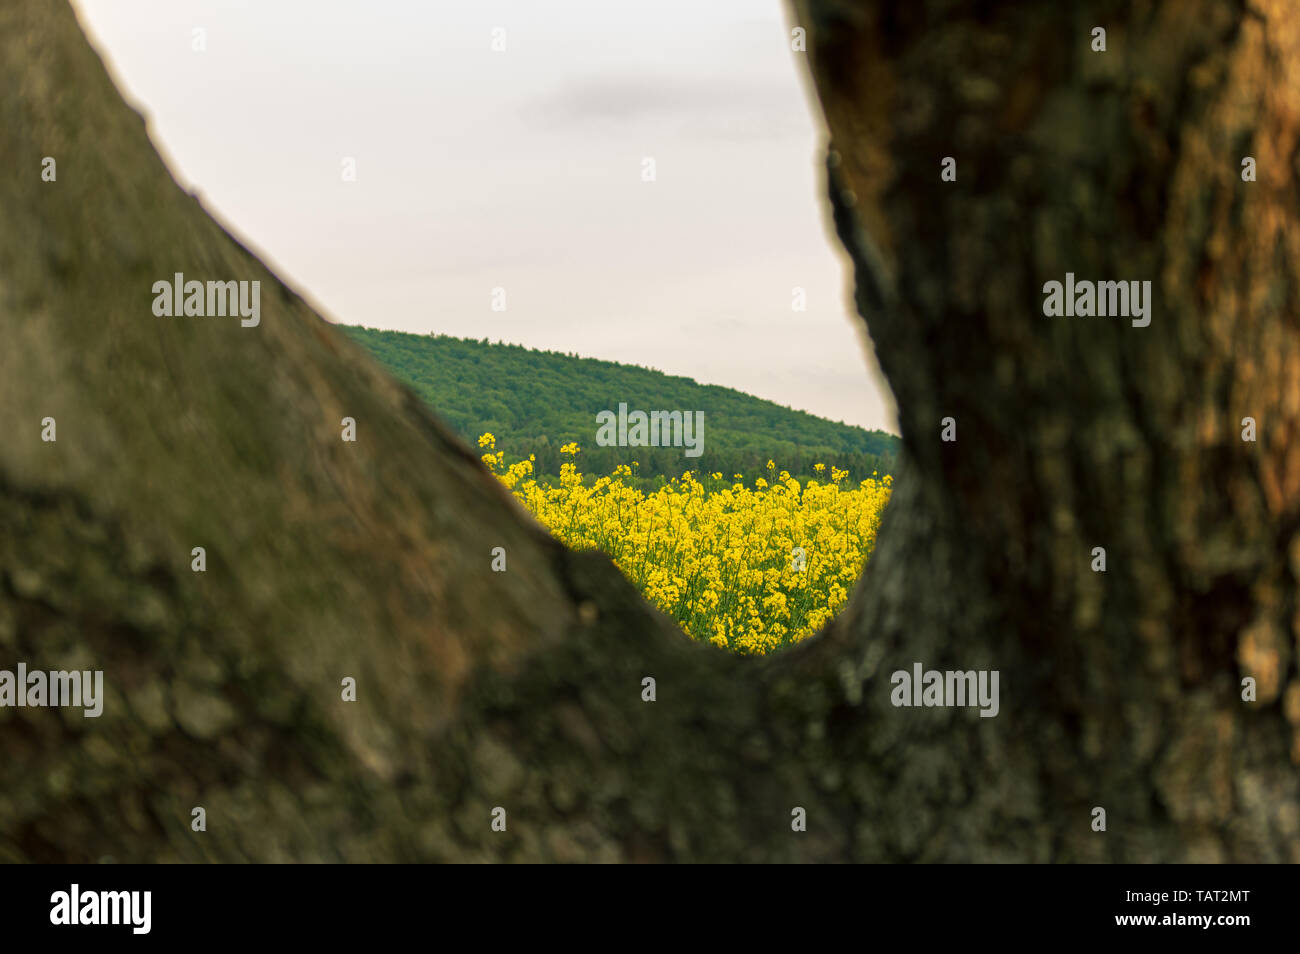 seeing a field of rapeseed plants through a gap between two branches of an old apple tree - Stock Image